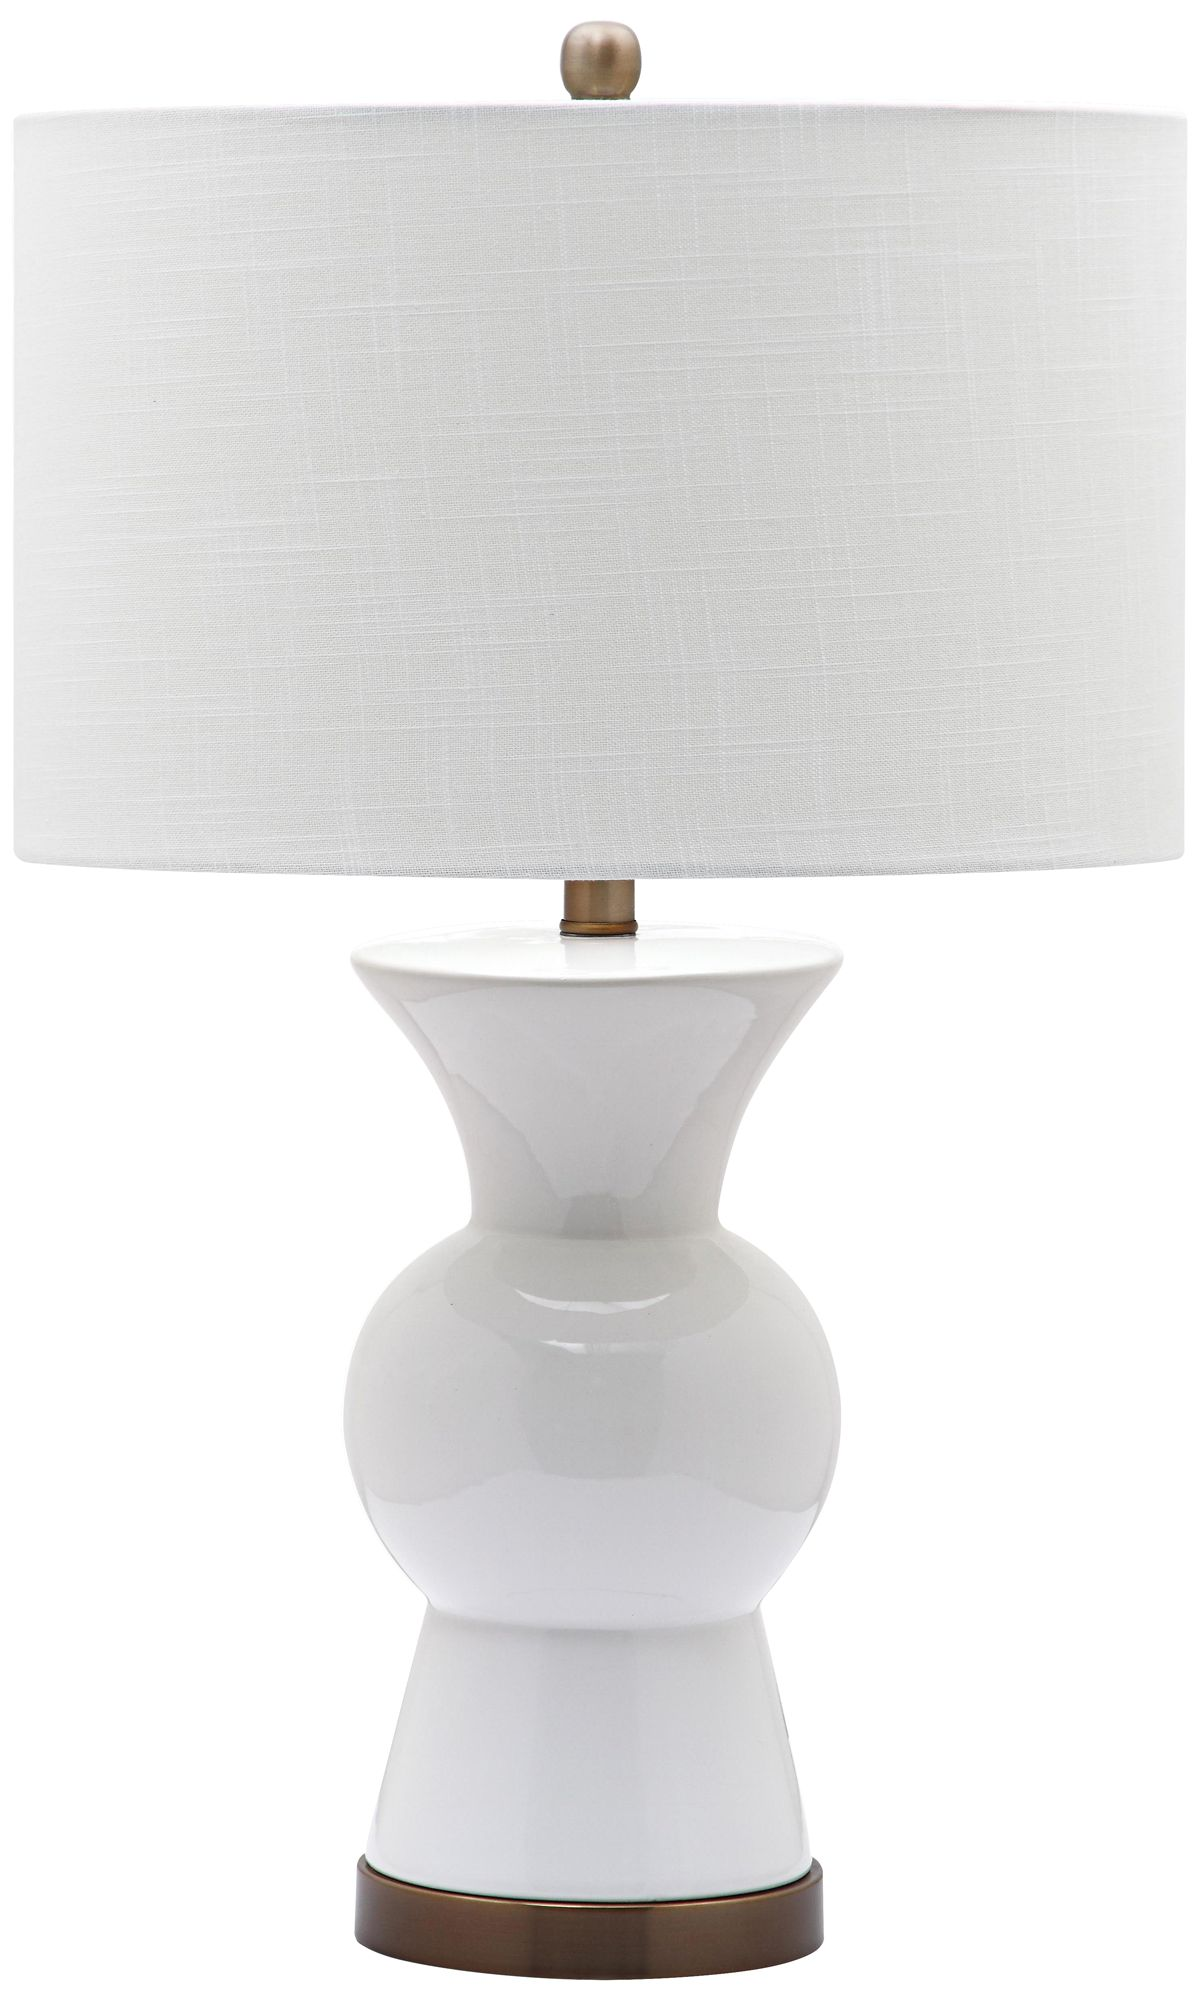 Berkeley Bright White Ceramic Table Lamp